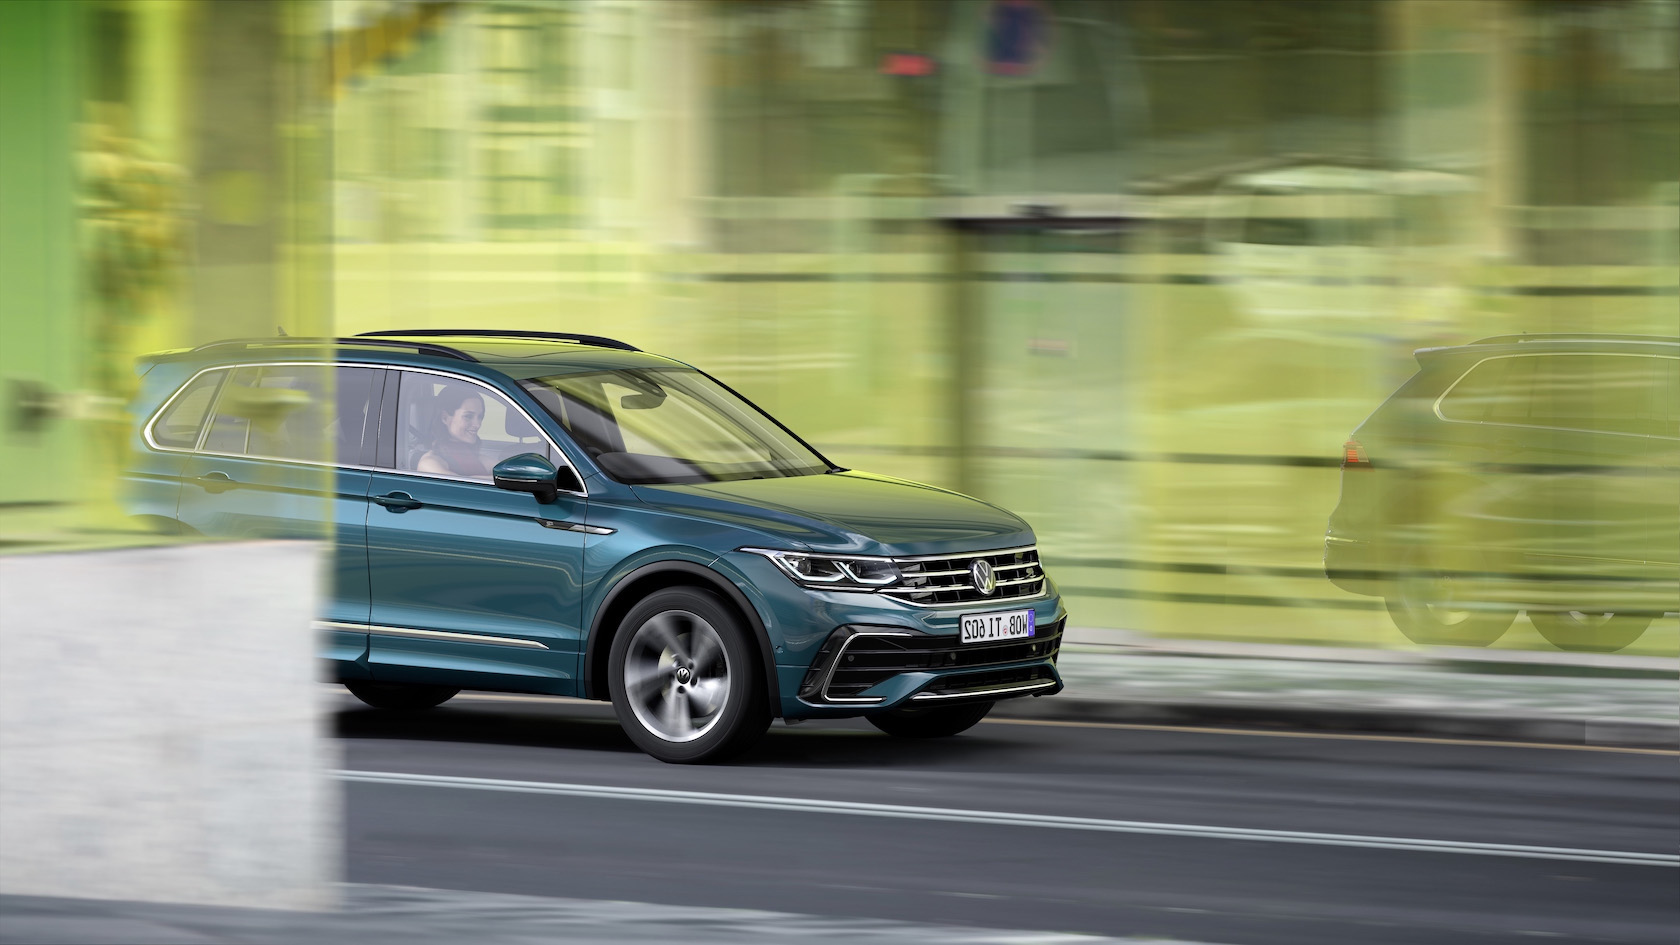 2021 Volkswagen Tiguan Brushes Up Bestseller With New Style